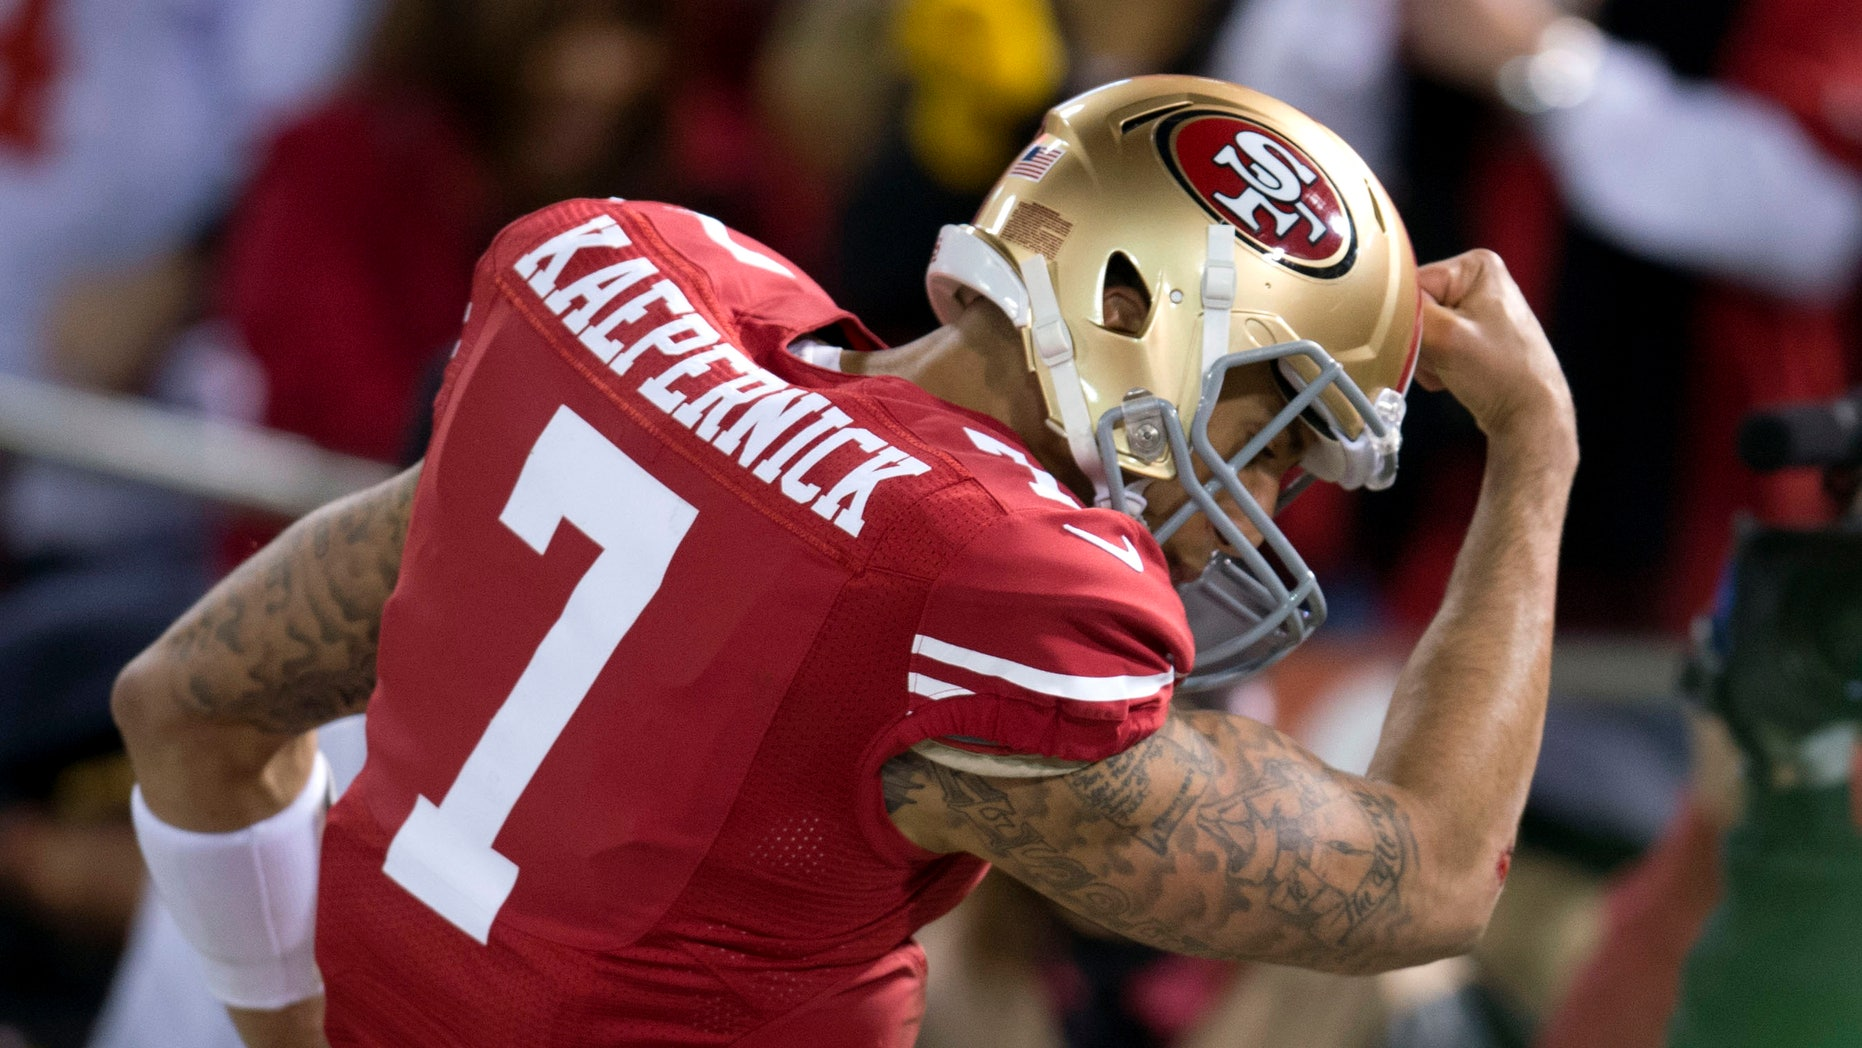 San Francisco 49ers quarterback Colin Kaepernick (7) celebrates his touchdown against the Green Bay Packers during an NFC divisional playoff NFL football game on Saturday, Jan. 12, 2013, in San Francisco. (AP Photo/The Sacramento Bee, Hector Amezcua)